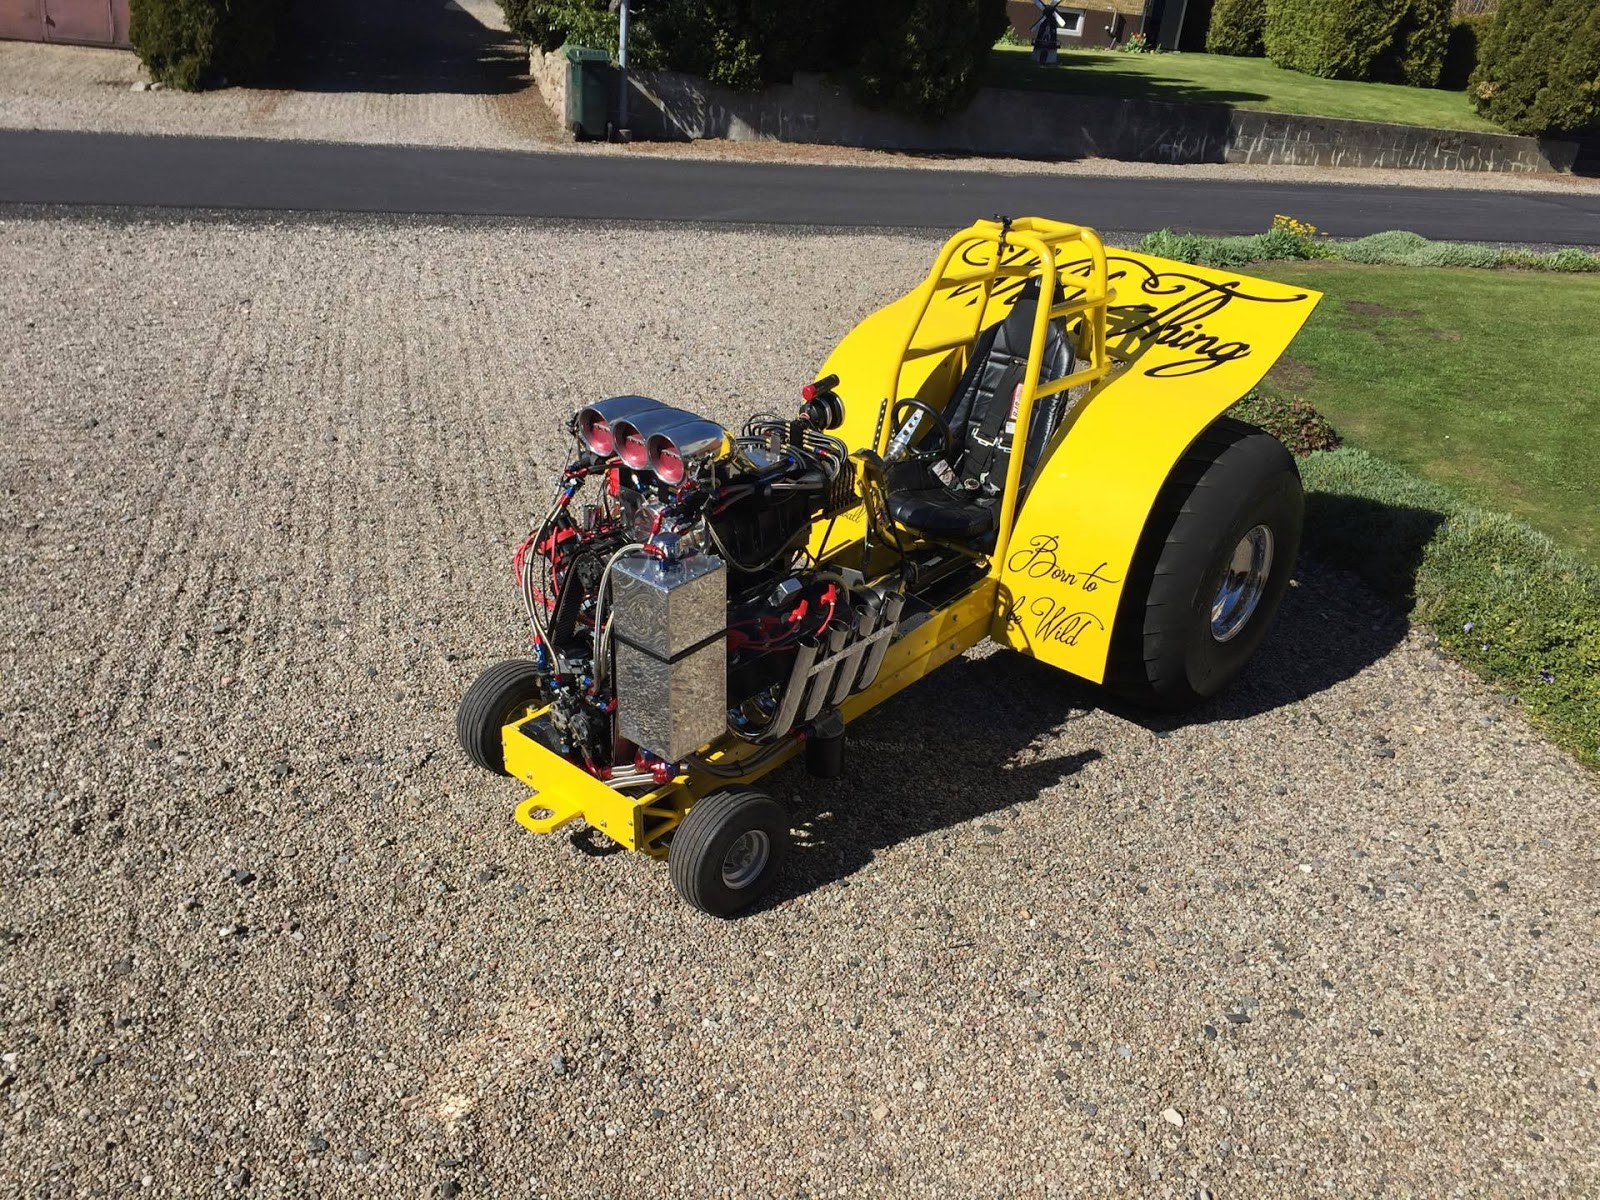 Mini Mod Tractor Pulling : Tractor pulling news pullingworld the new wild thing